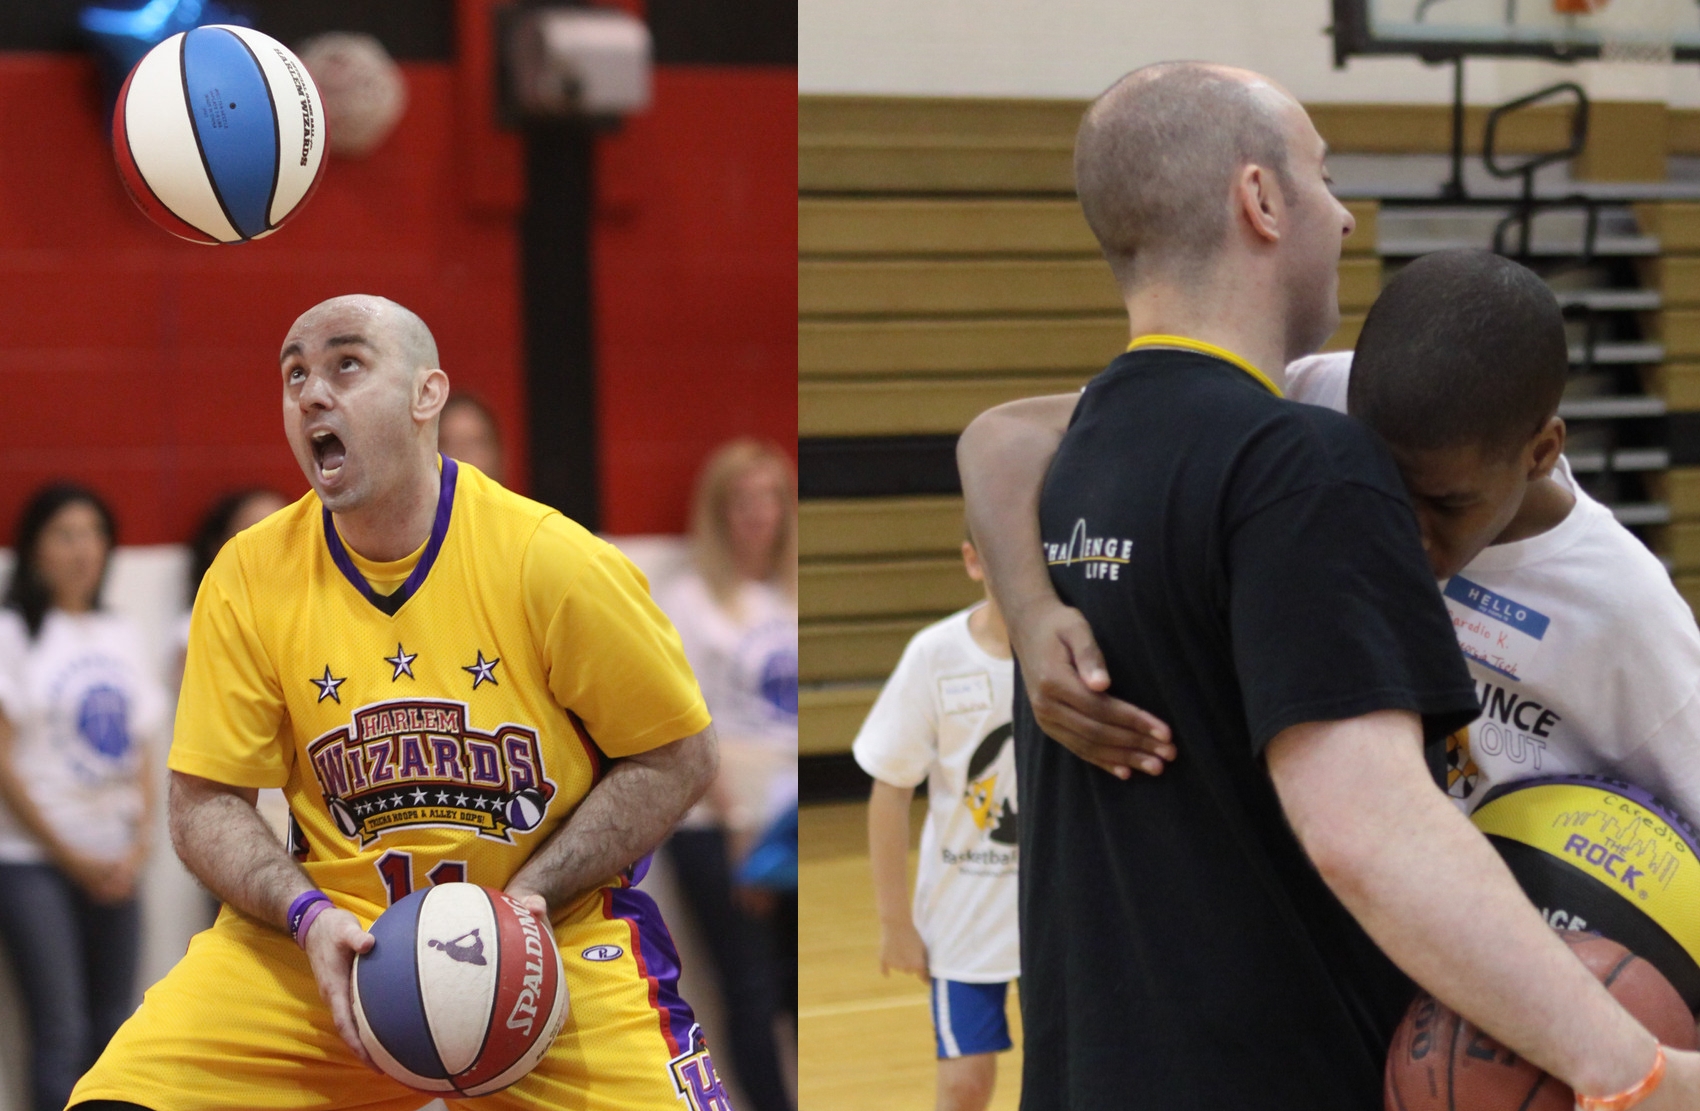 Mighty Mike Simmel plays basketball with epilepsy